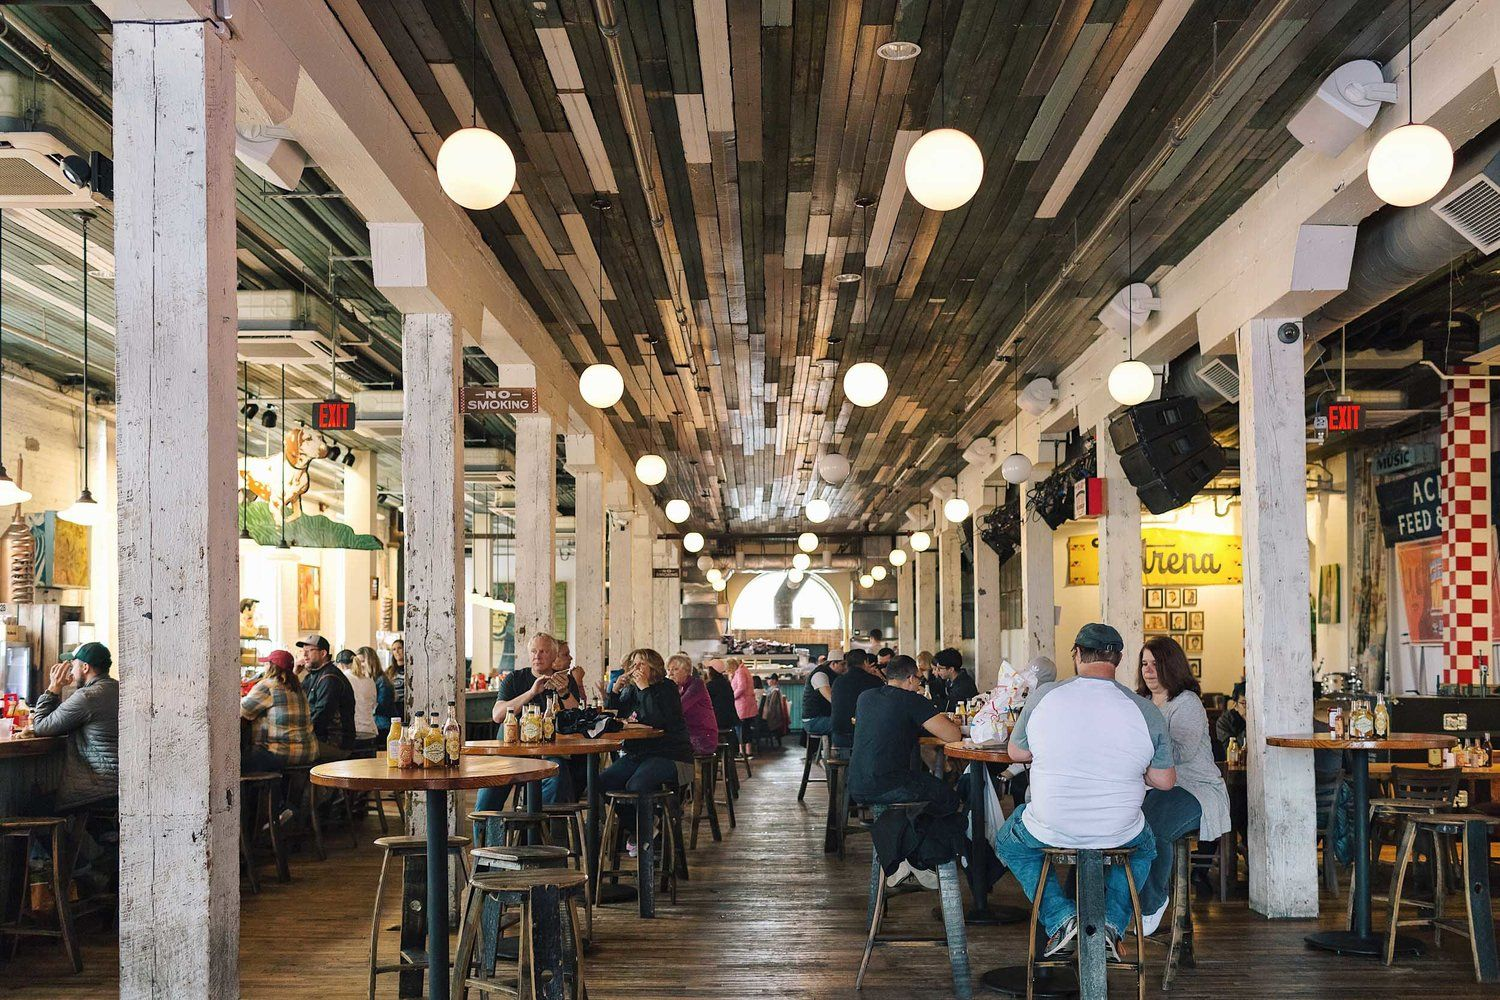 The First Floor Of Acme Feed Seed A Honkytonk Style Restaurant With Food And Beer To Be Eaten On Communal Tables